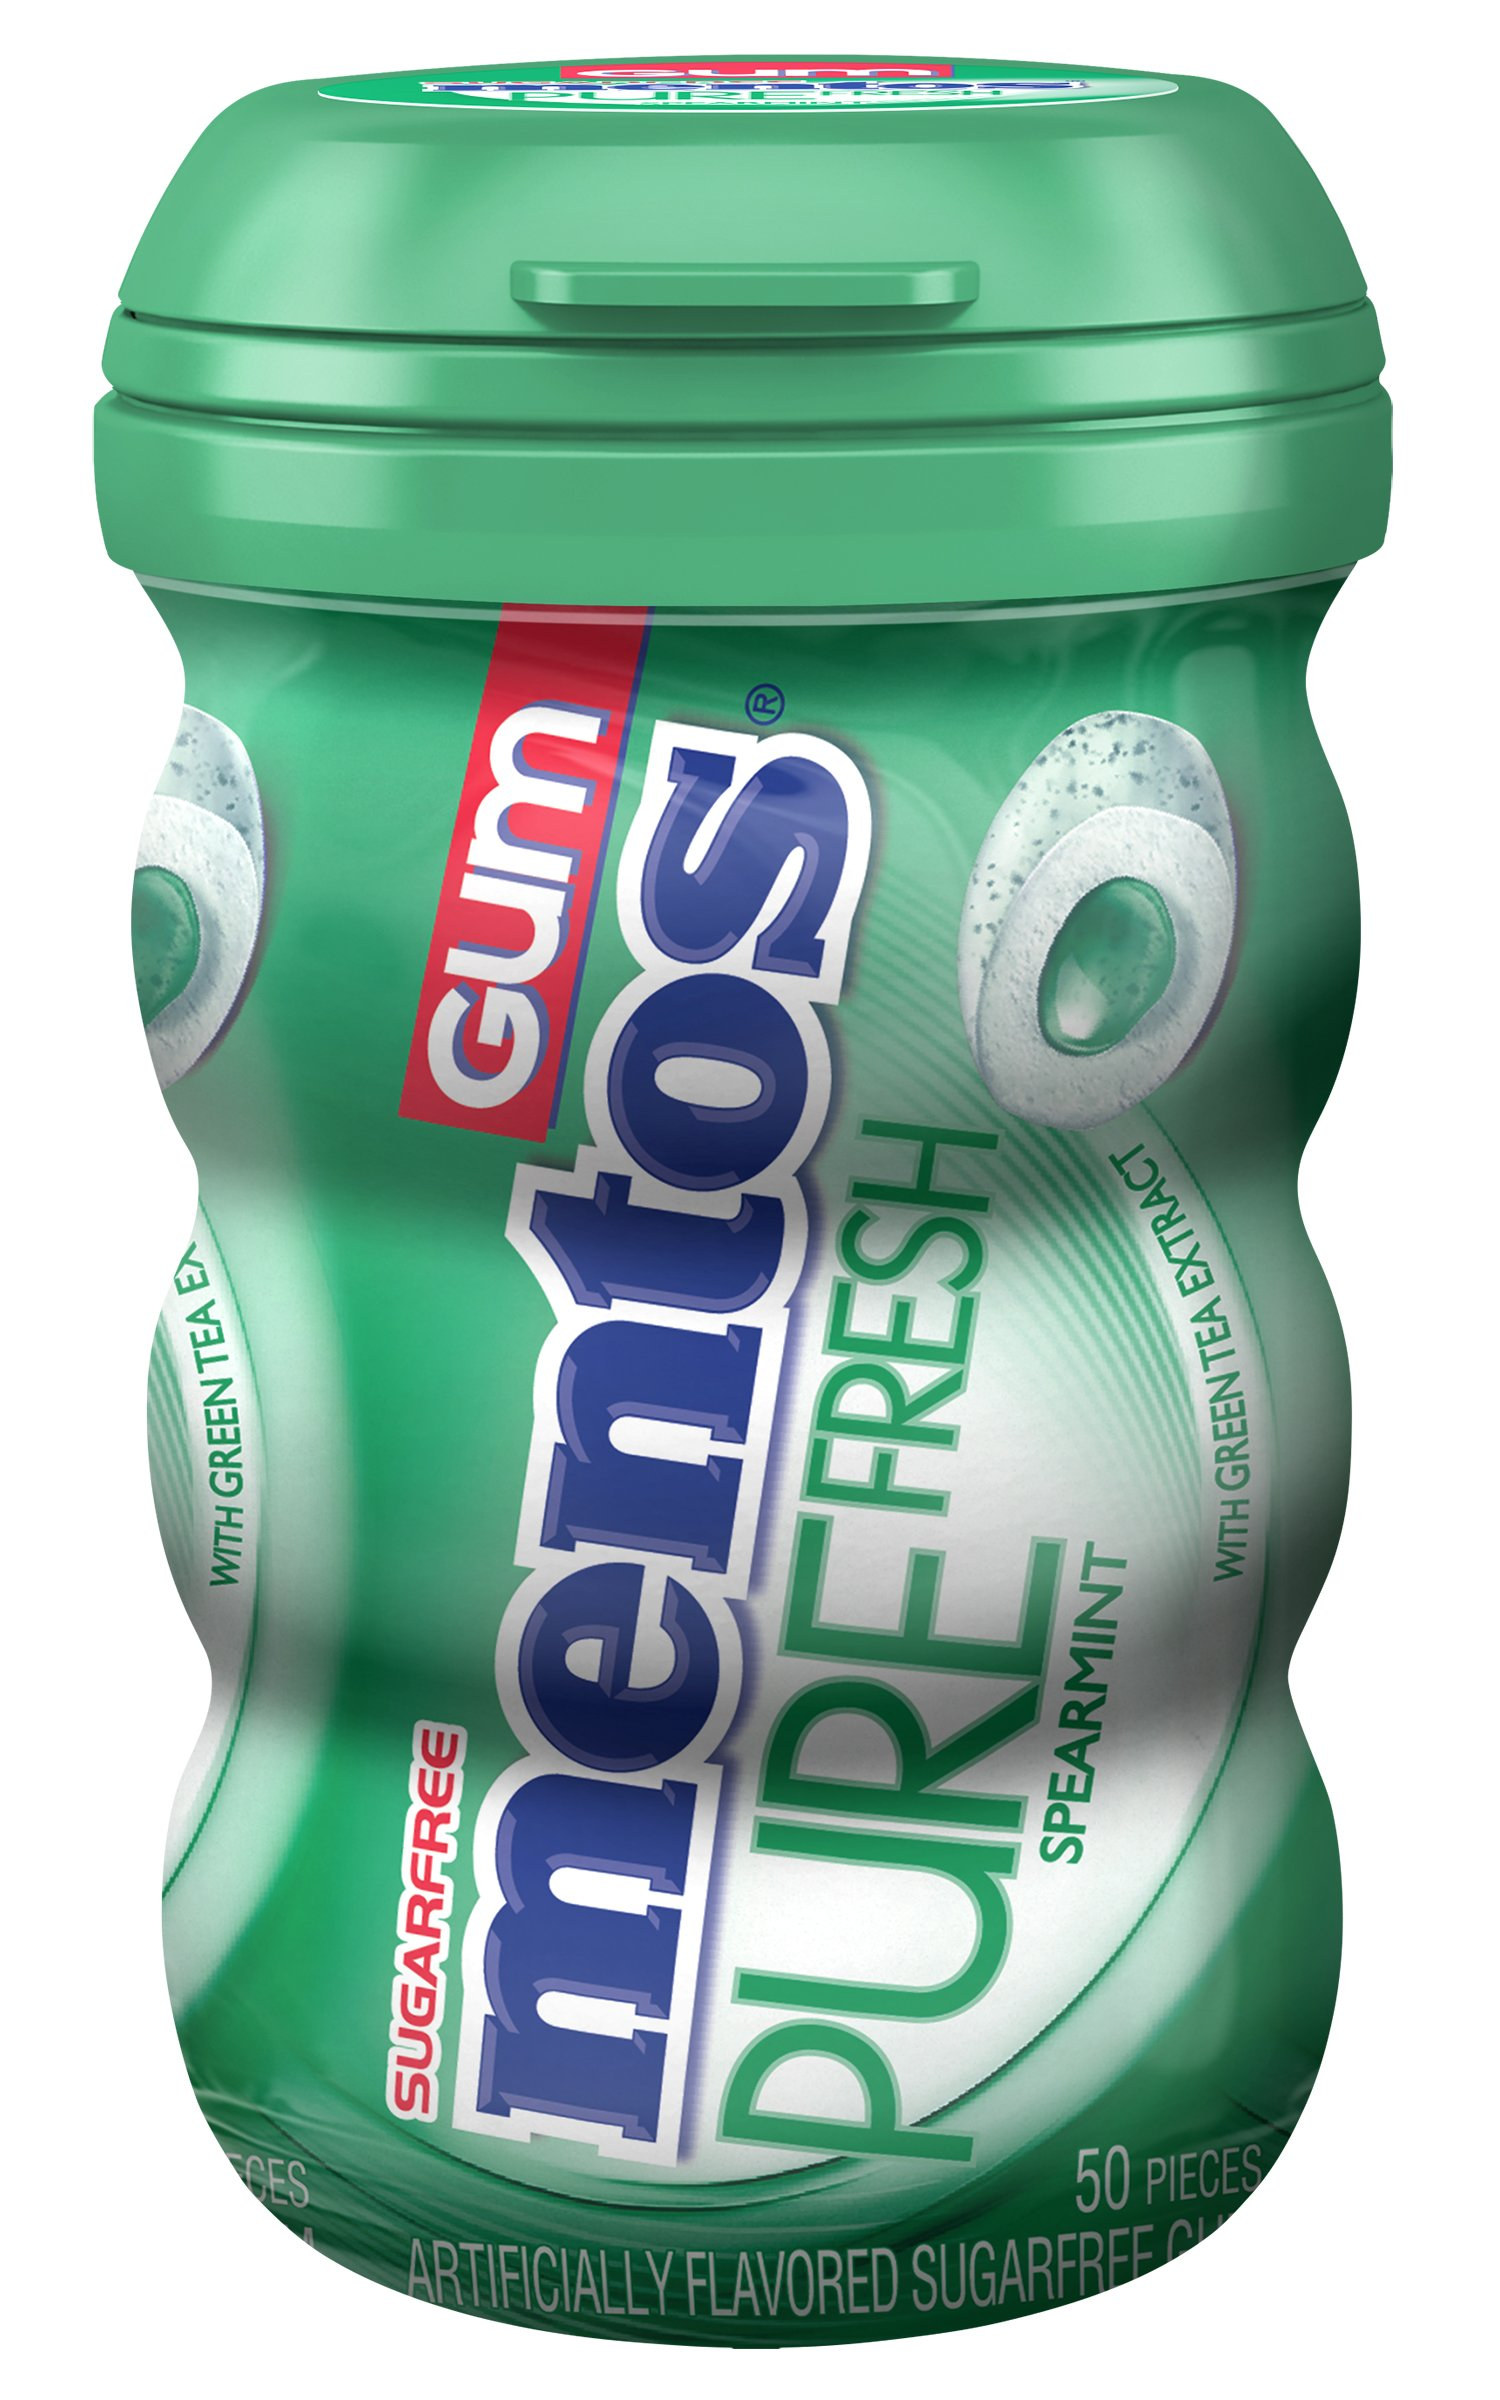 Amazon.com : Mentos Sugar-Free Chewing Gum, Red Fruit Lime